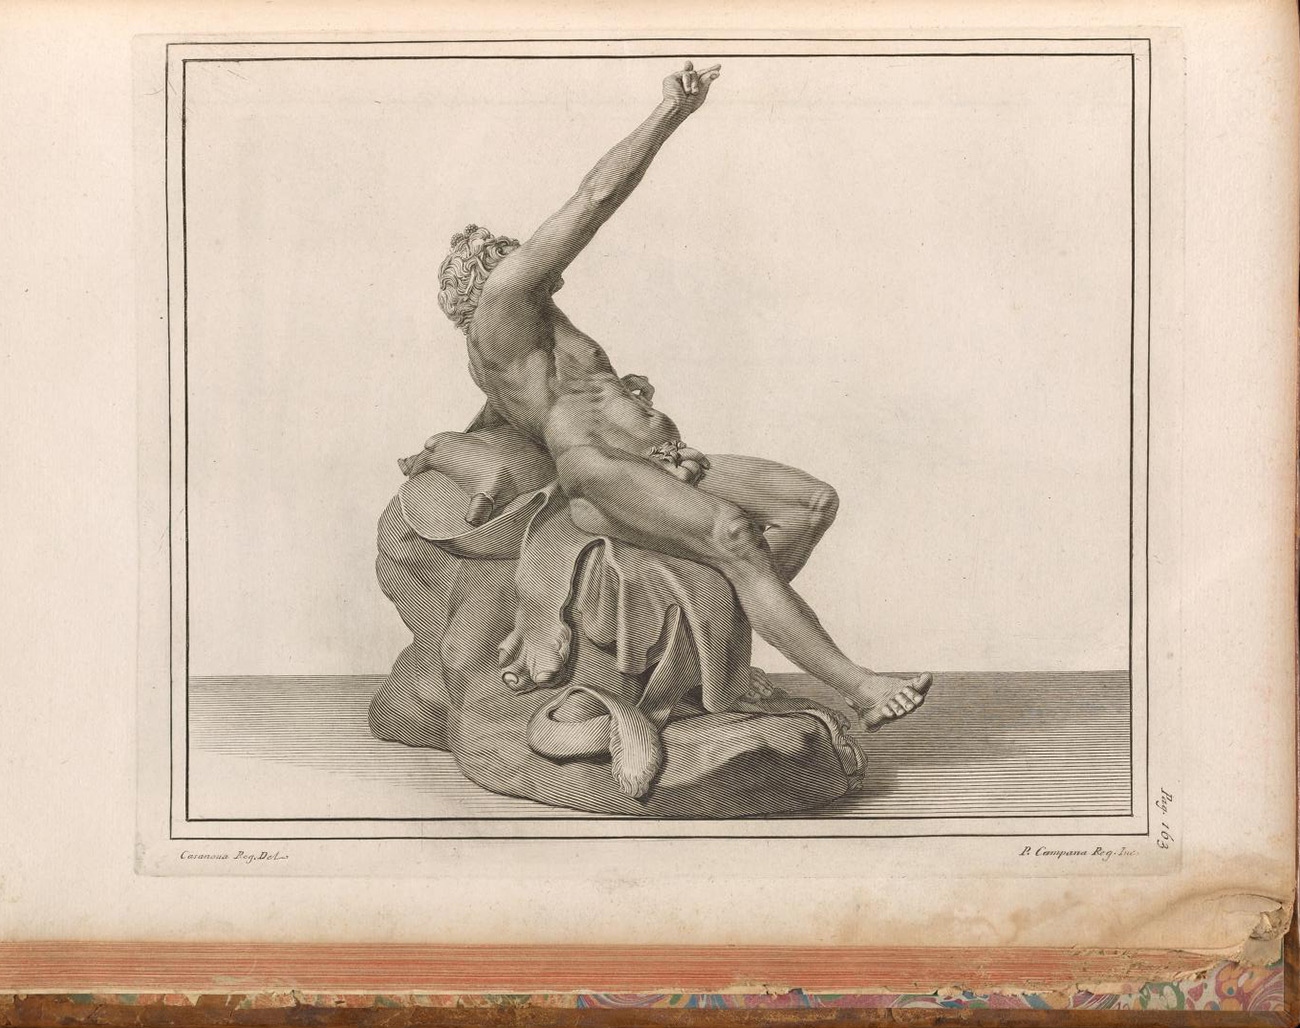 Engraved rear view of the Drunken Satyr from the front as he looked soon after being discovered